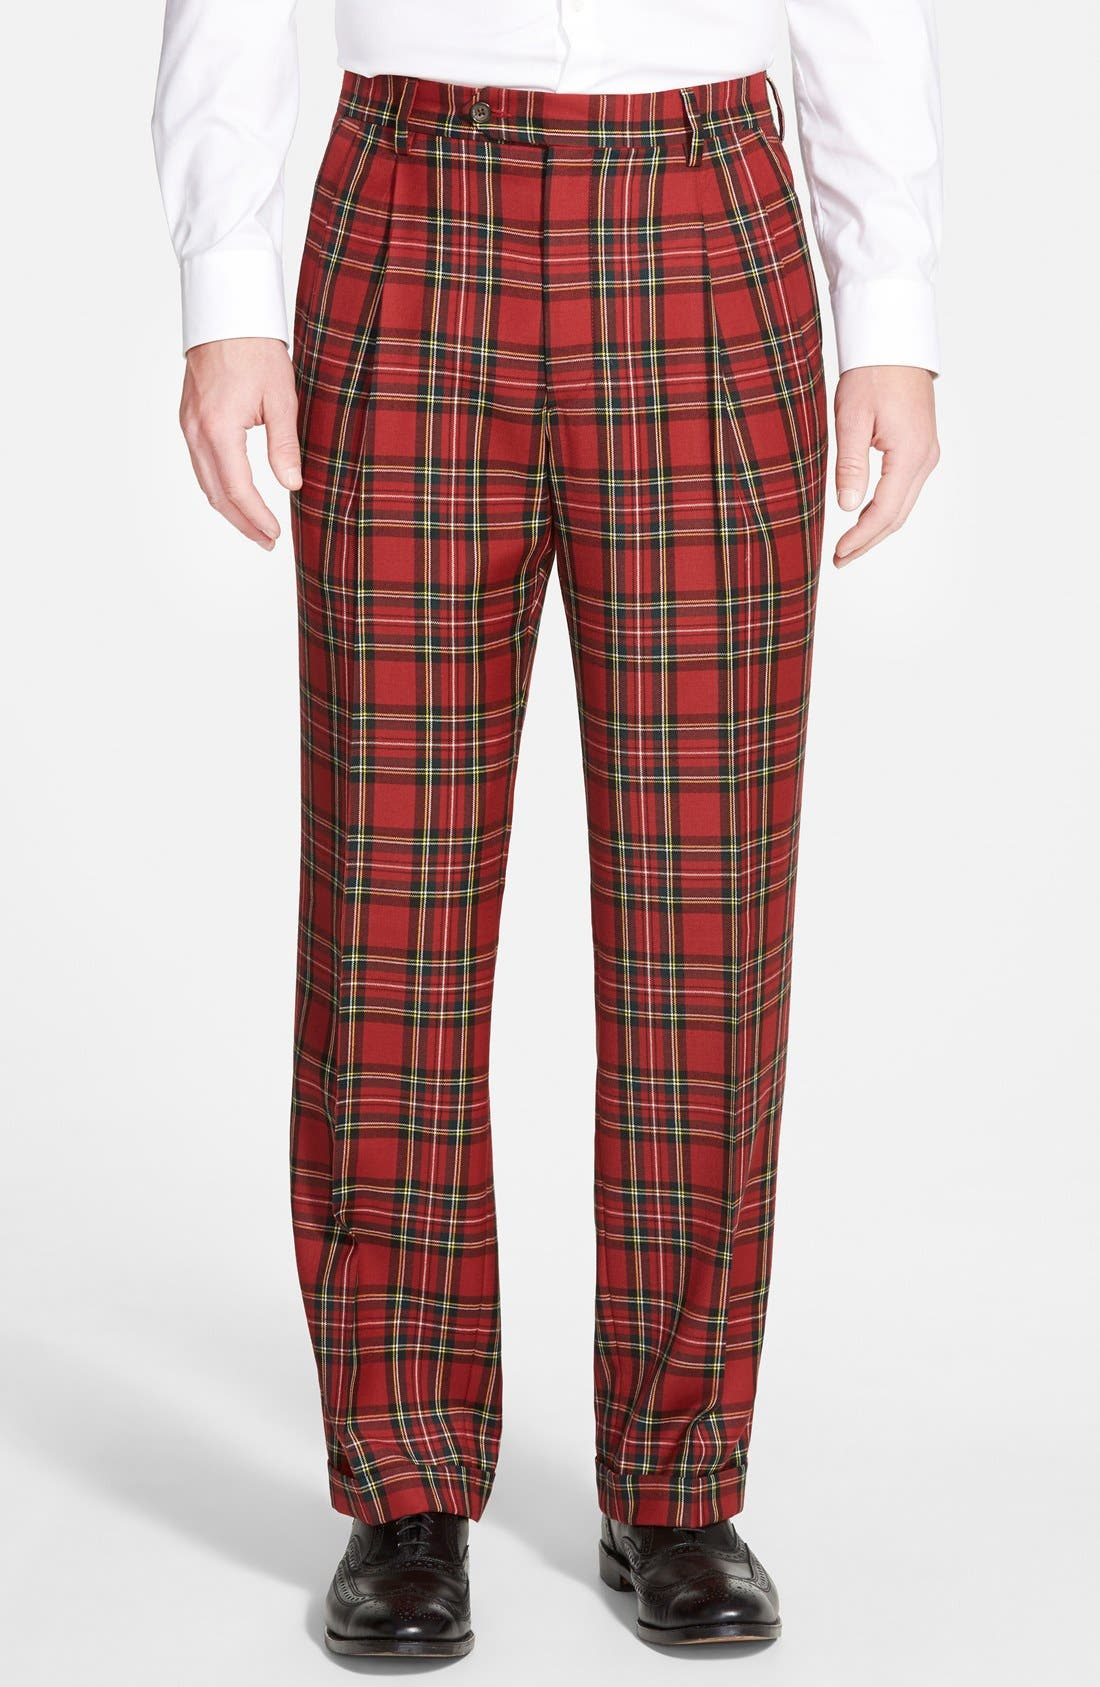 Men's Vintage Pants, Trousers, Jeans, Overalls Mens Berle Pleated Plaid Wool Trousers Size 36 x Unhemmed - Red $175.00 AT vintagedancer.com